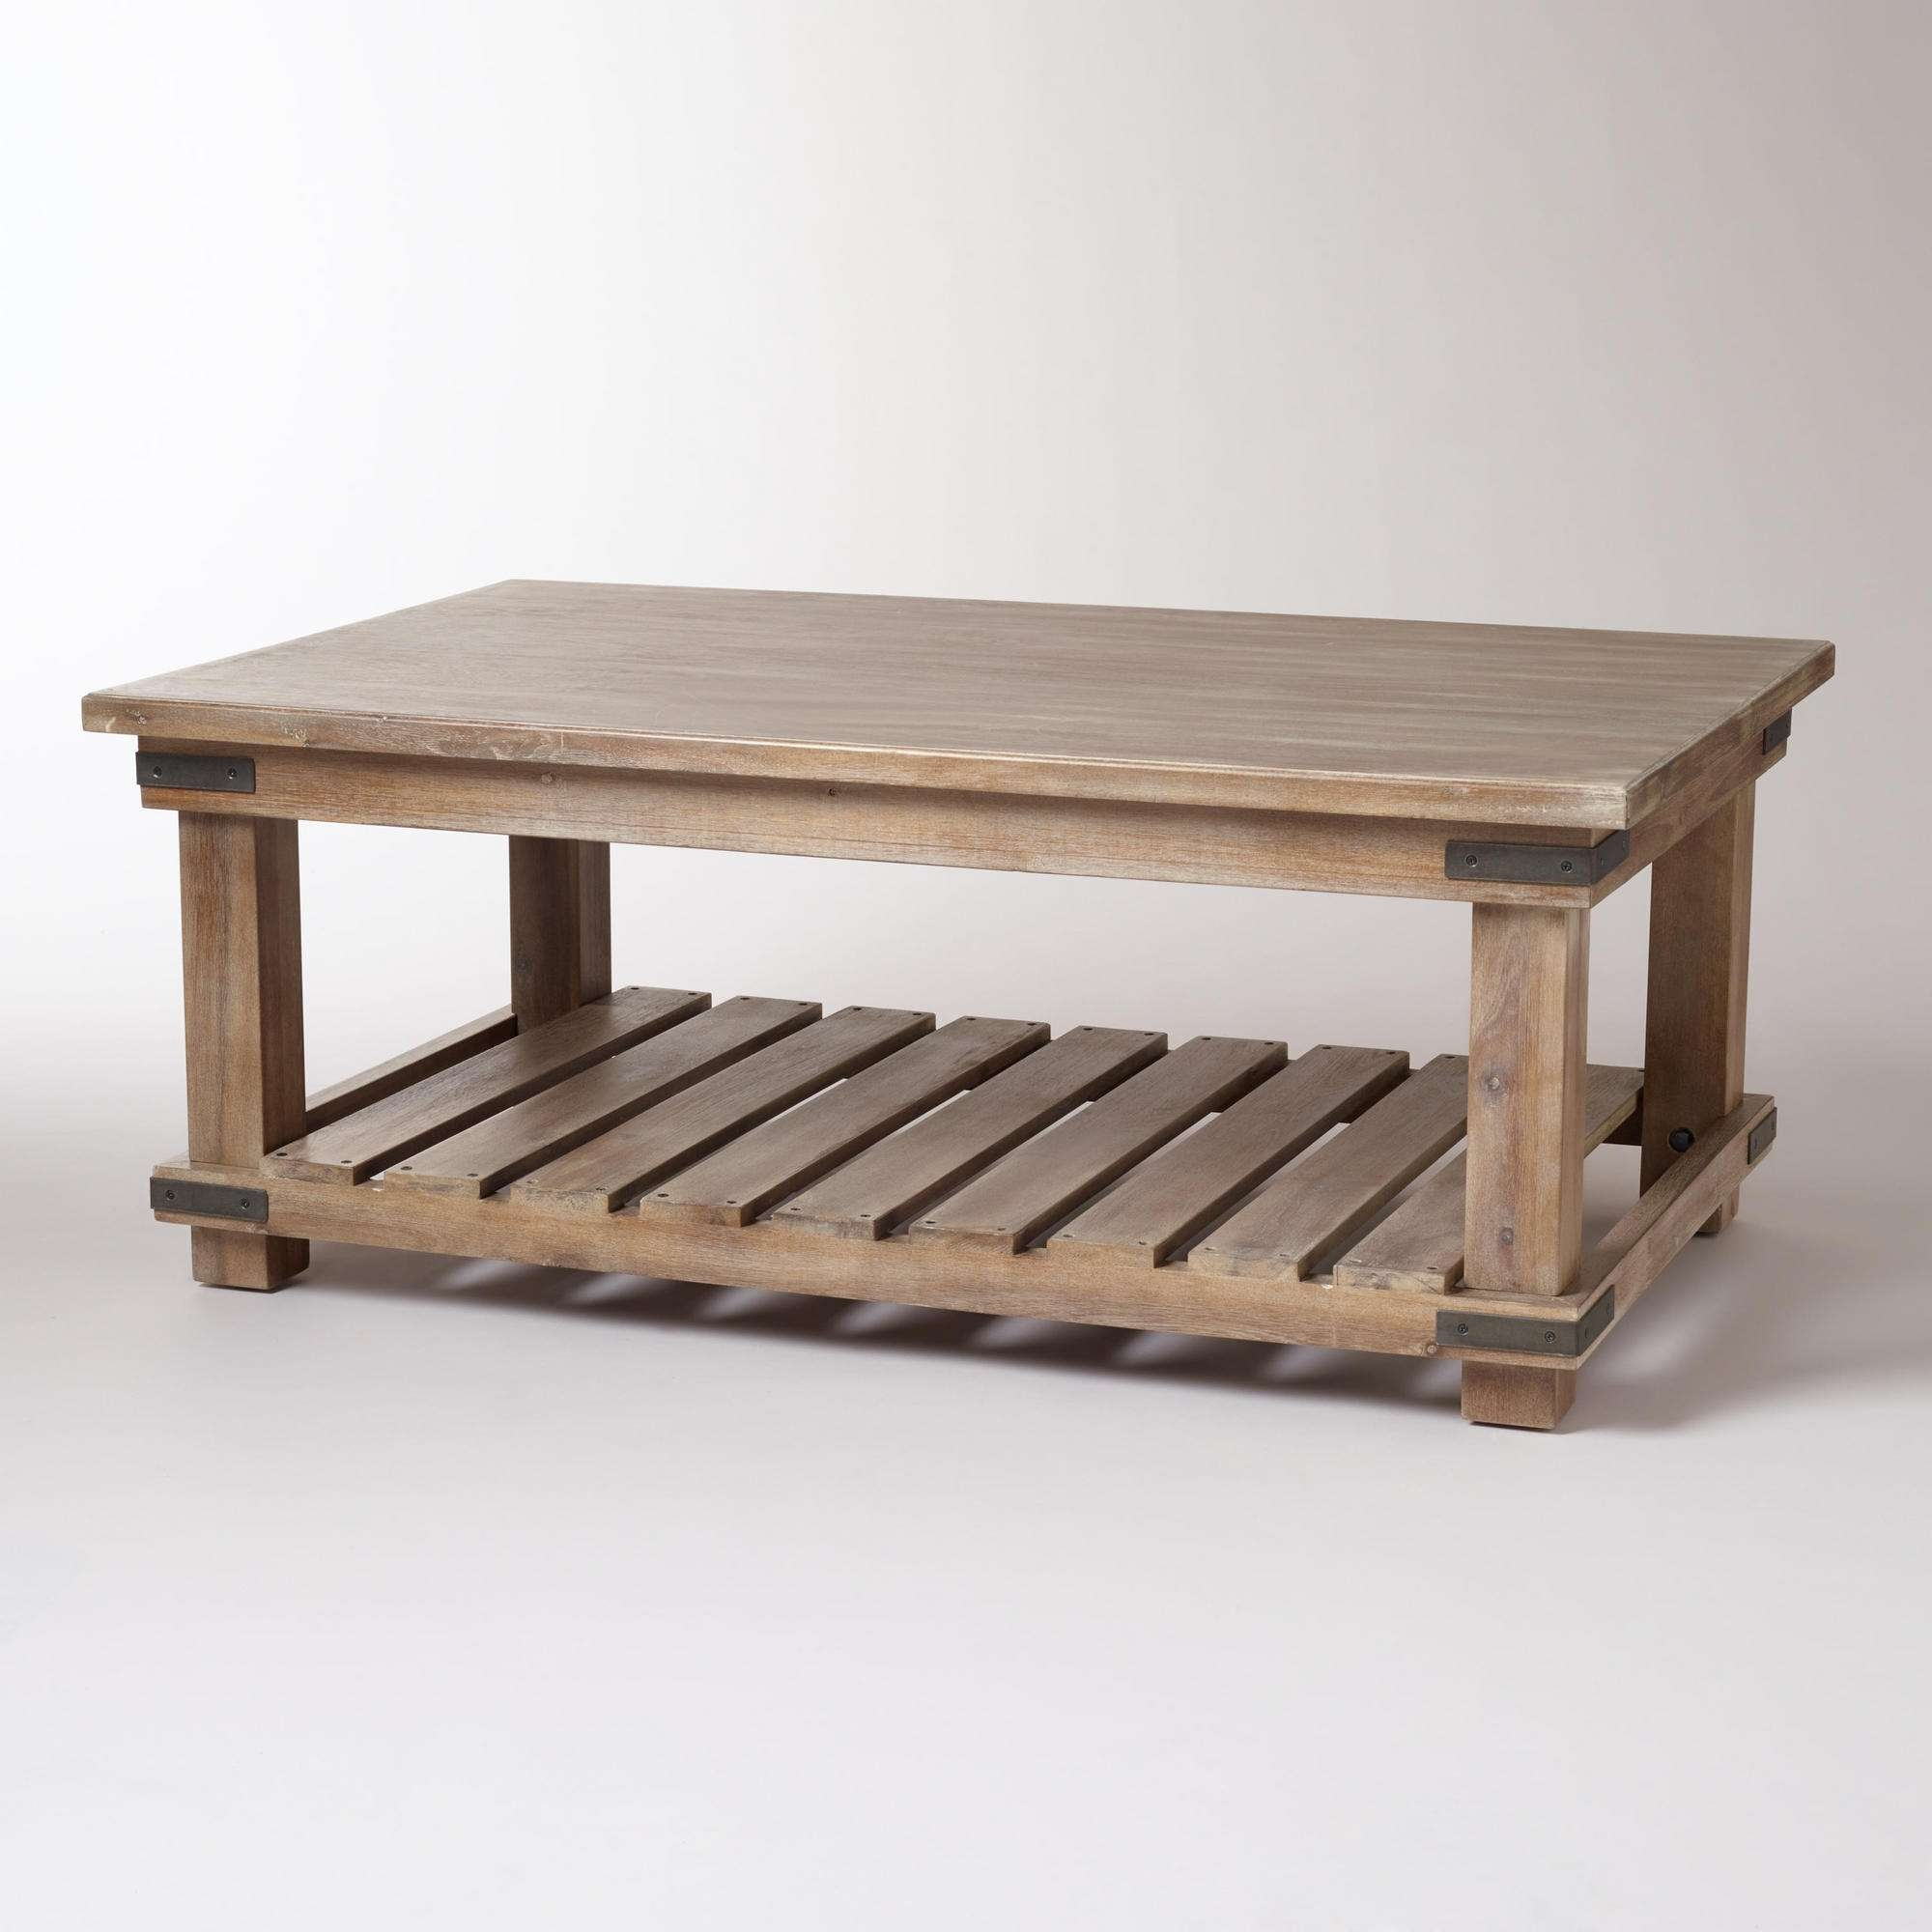 Brilliant Beech Wood Coffee Table On Interior Design For Home With Fashionable Beech Coffee Tables (View 12 of 20)